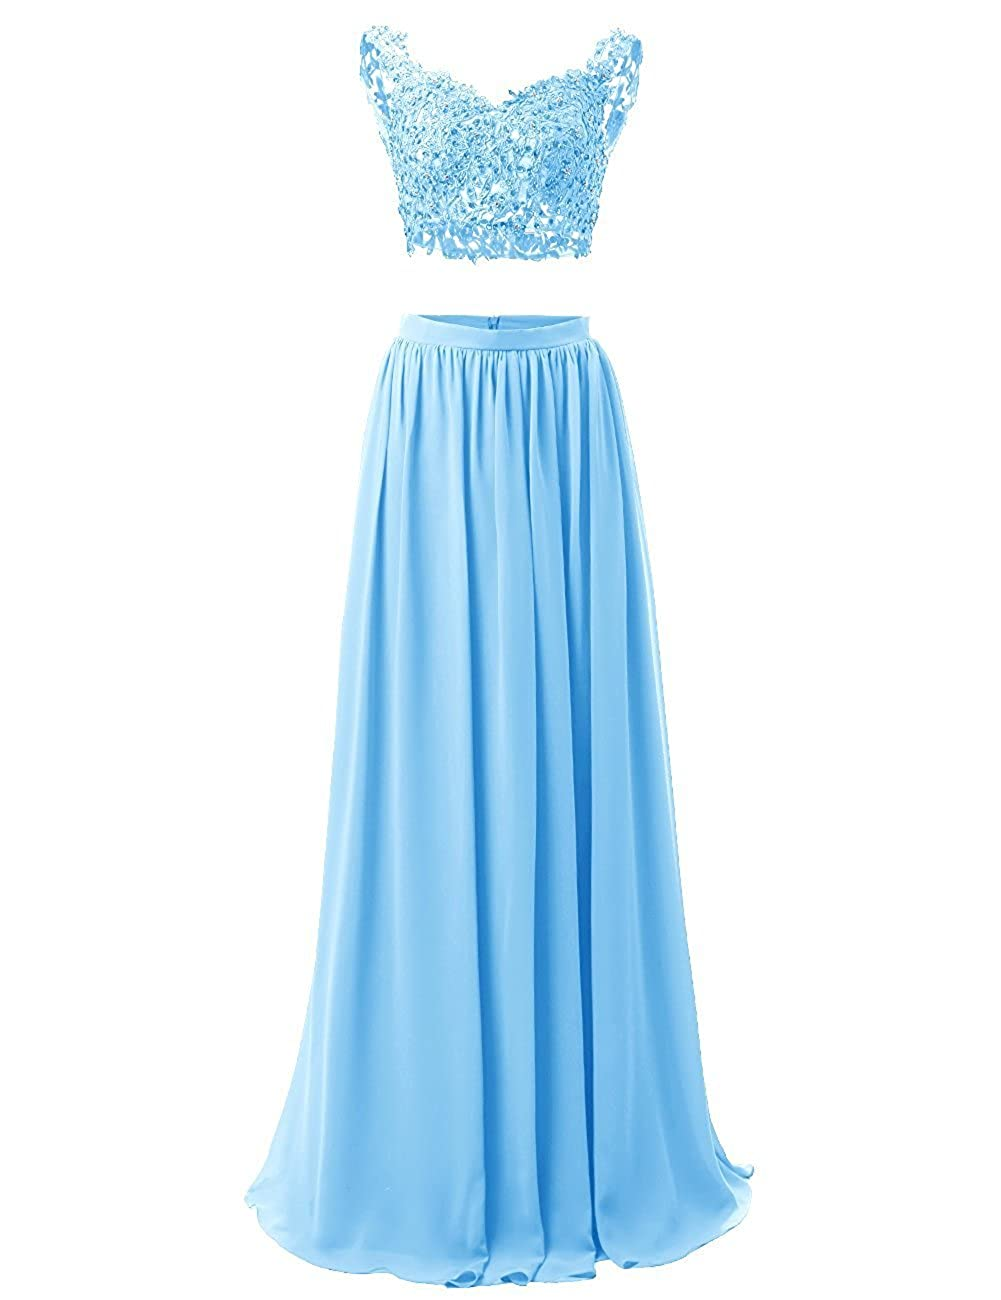 bluee M Bridal Women's Sequines Appliques 2 Piece VNeck Long Prom Homecoming Dress